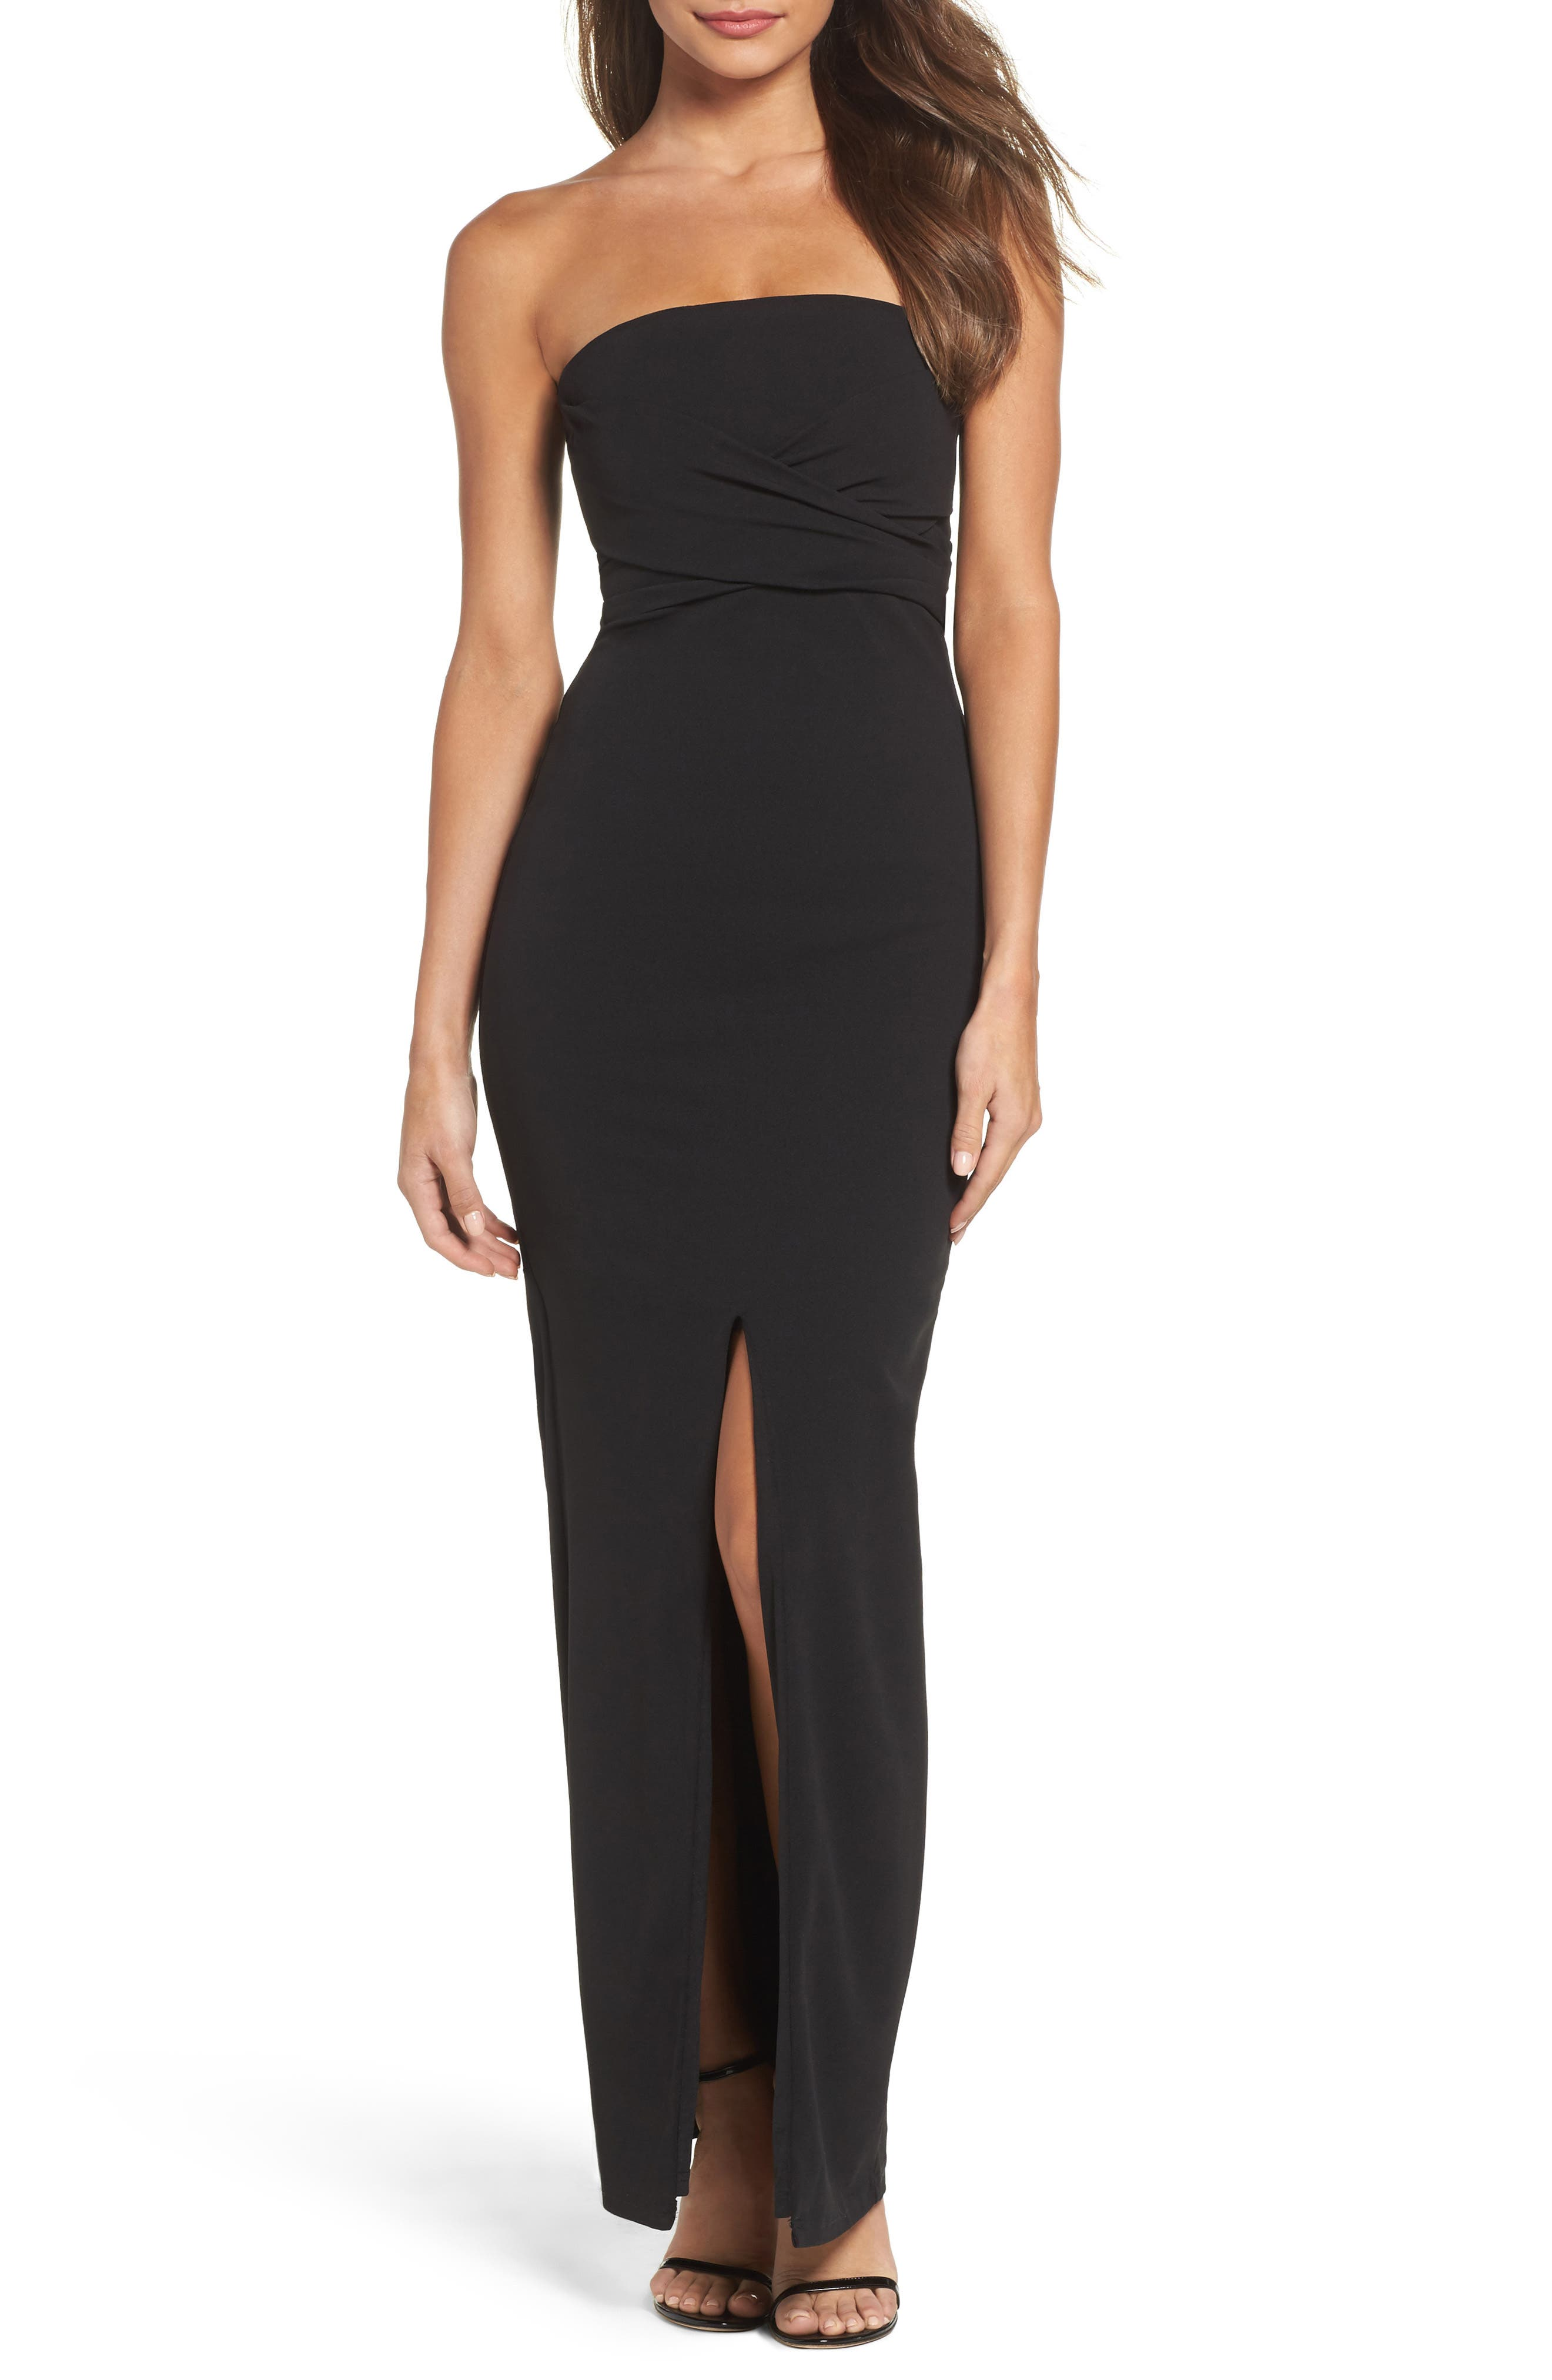 LULUS Own the Night Strapless Maxi Dress, Main, color, BLACK